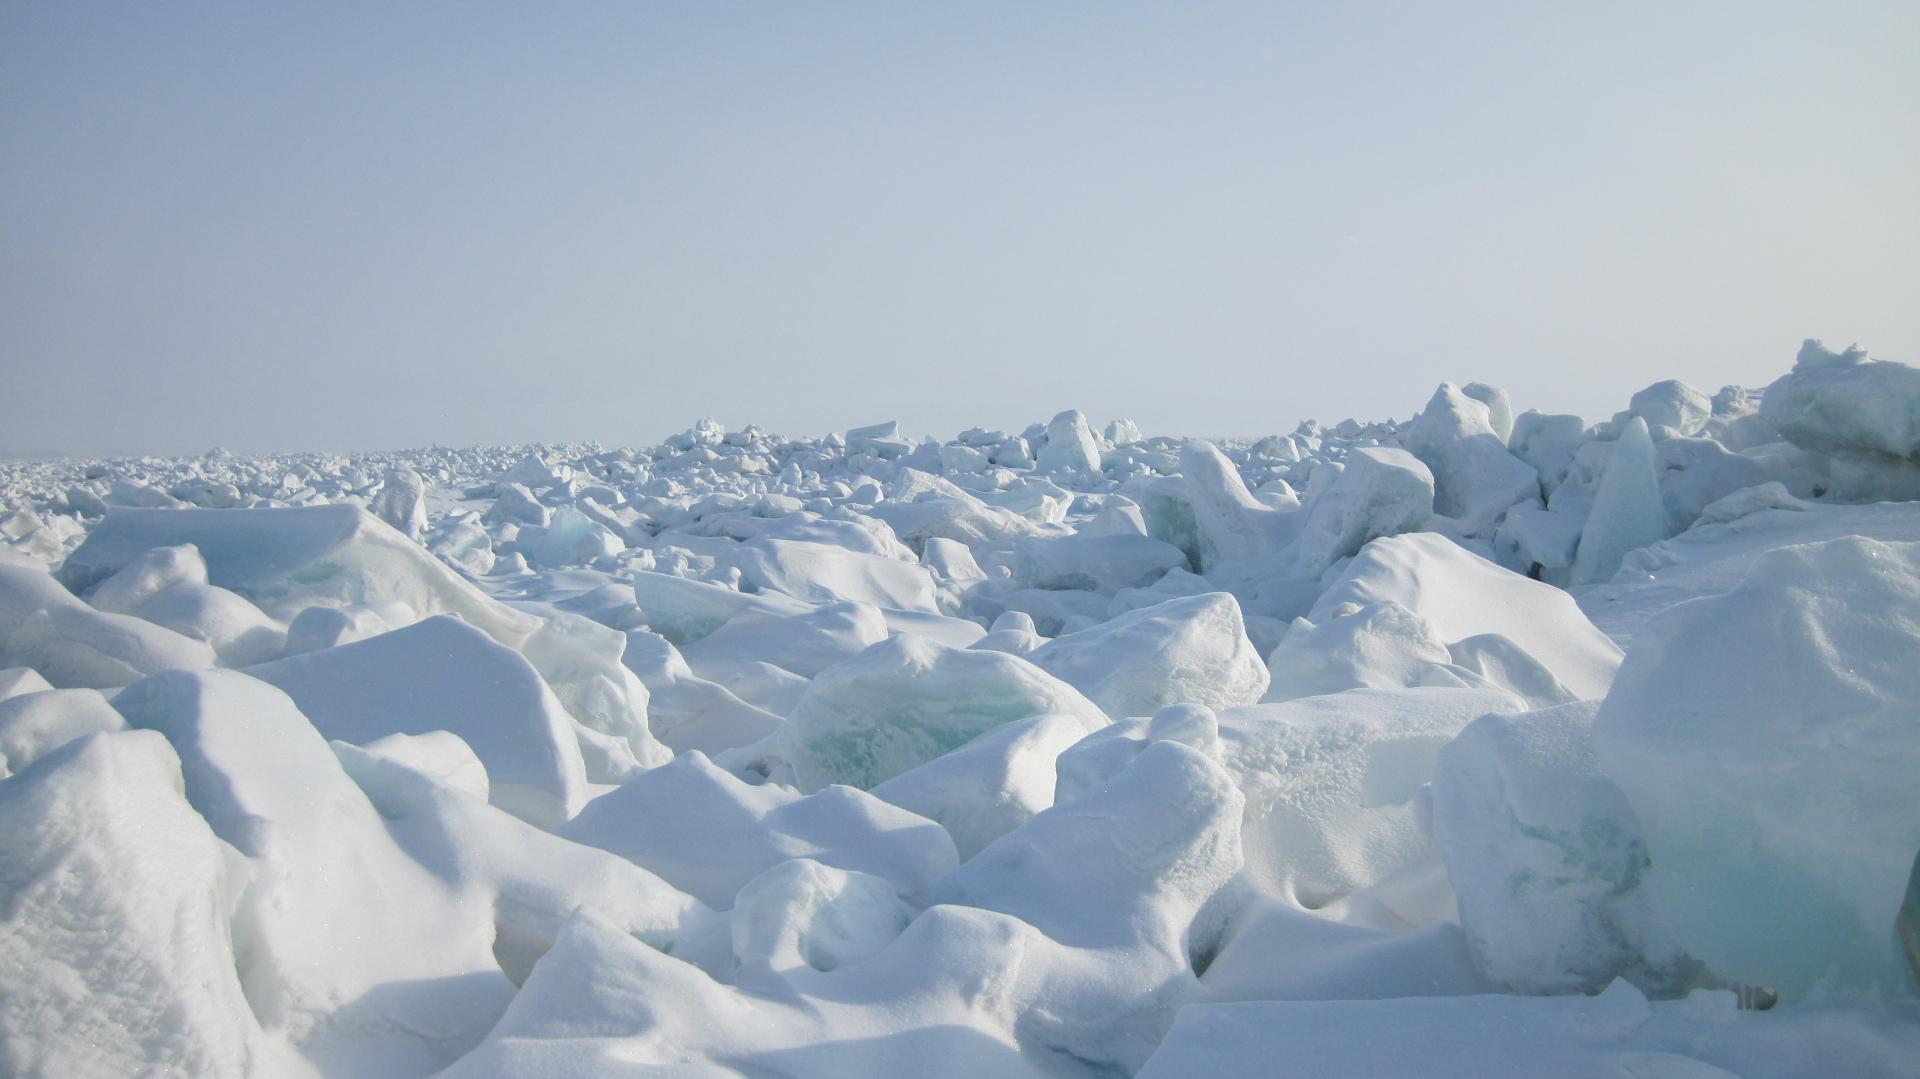 Laptev sea ice hummocks